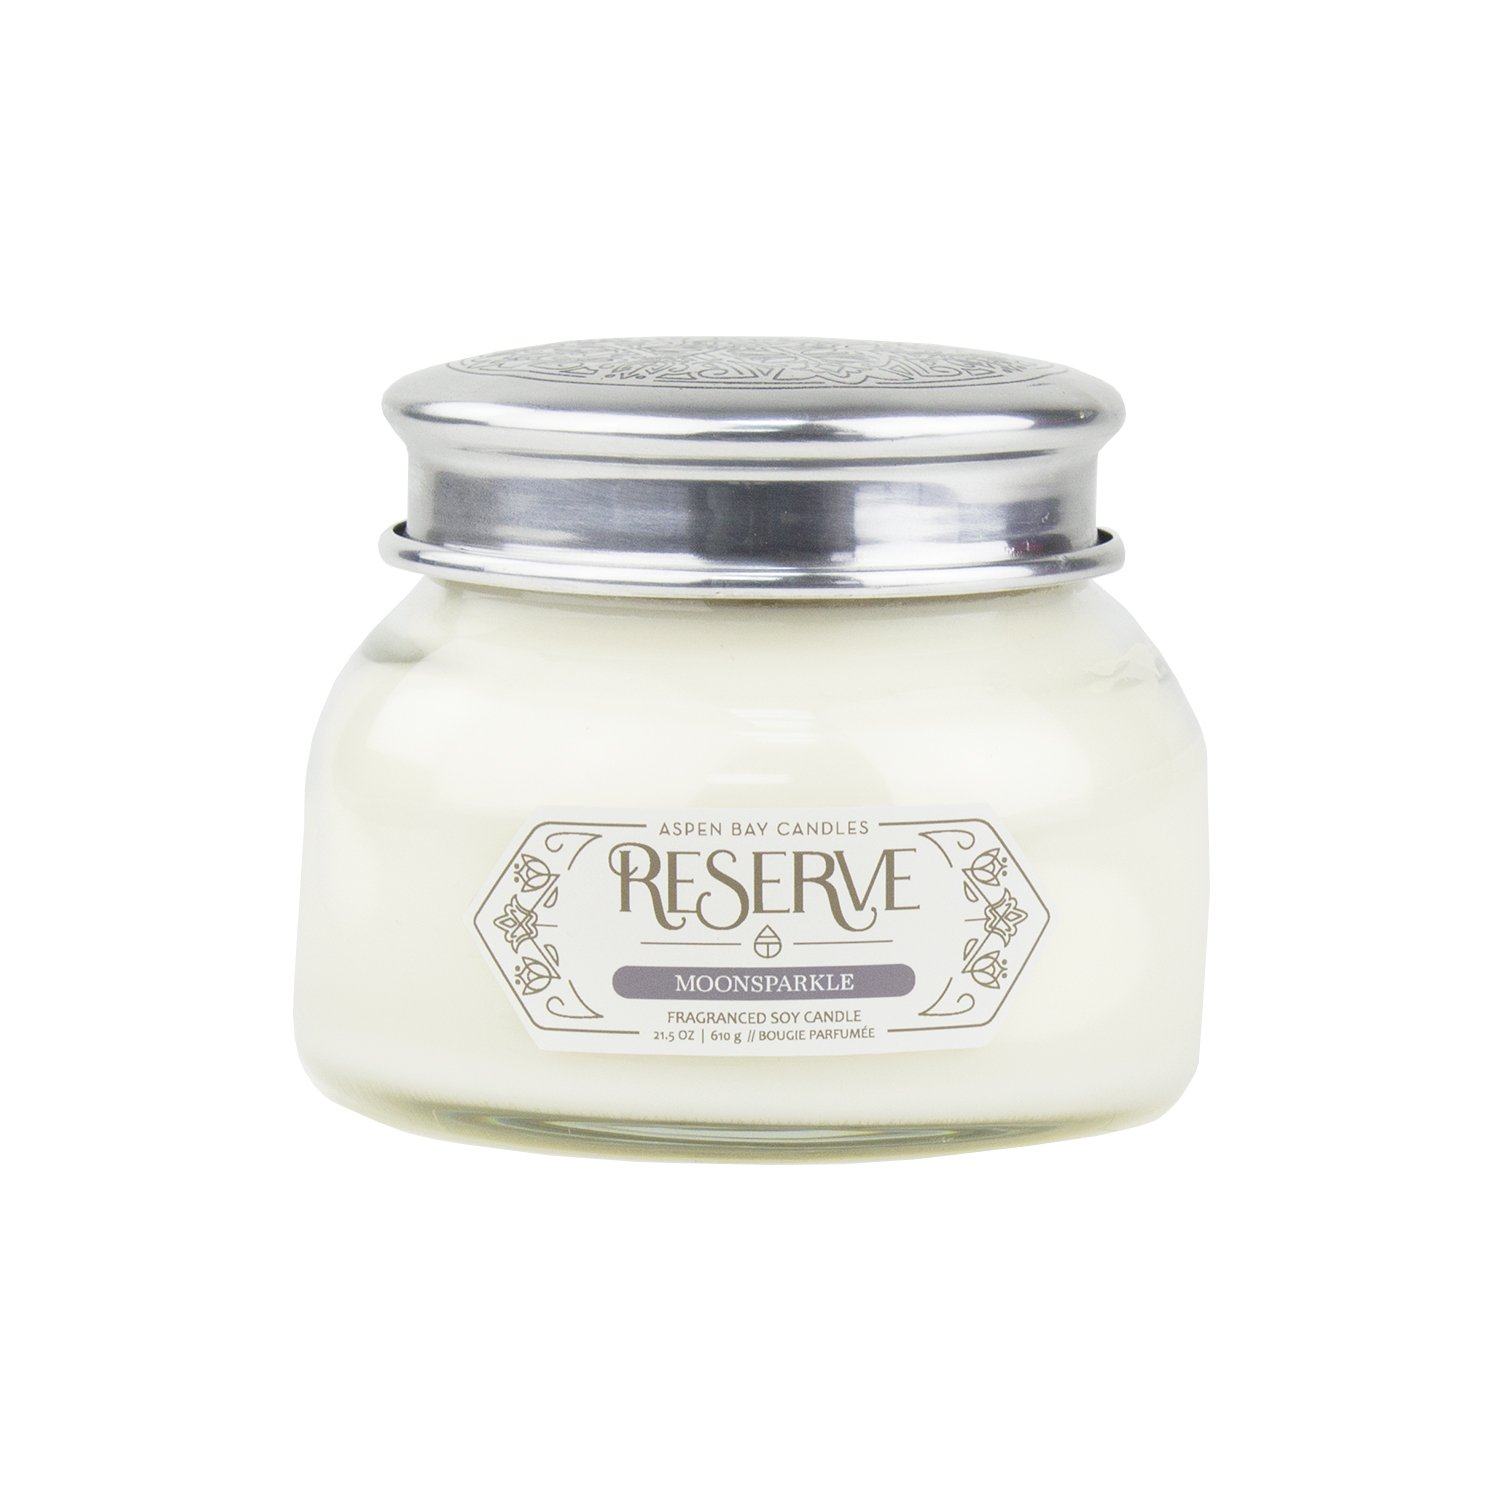 Moonsparkle Aspen Bay Reserve Collection 19 Ounce Signature Scented Jar Candle